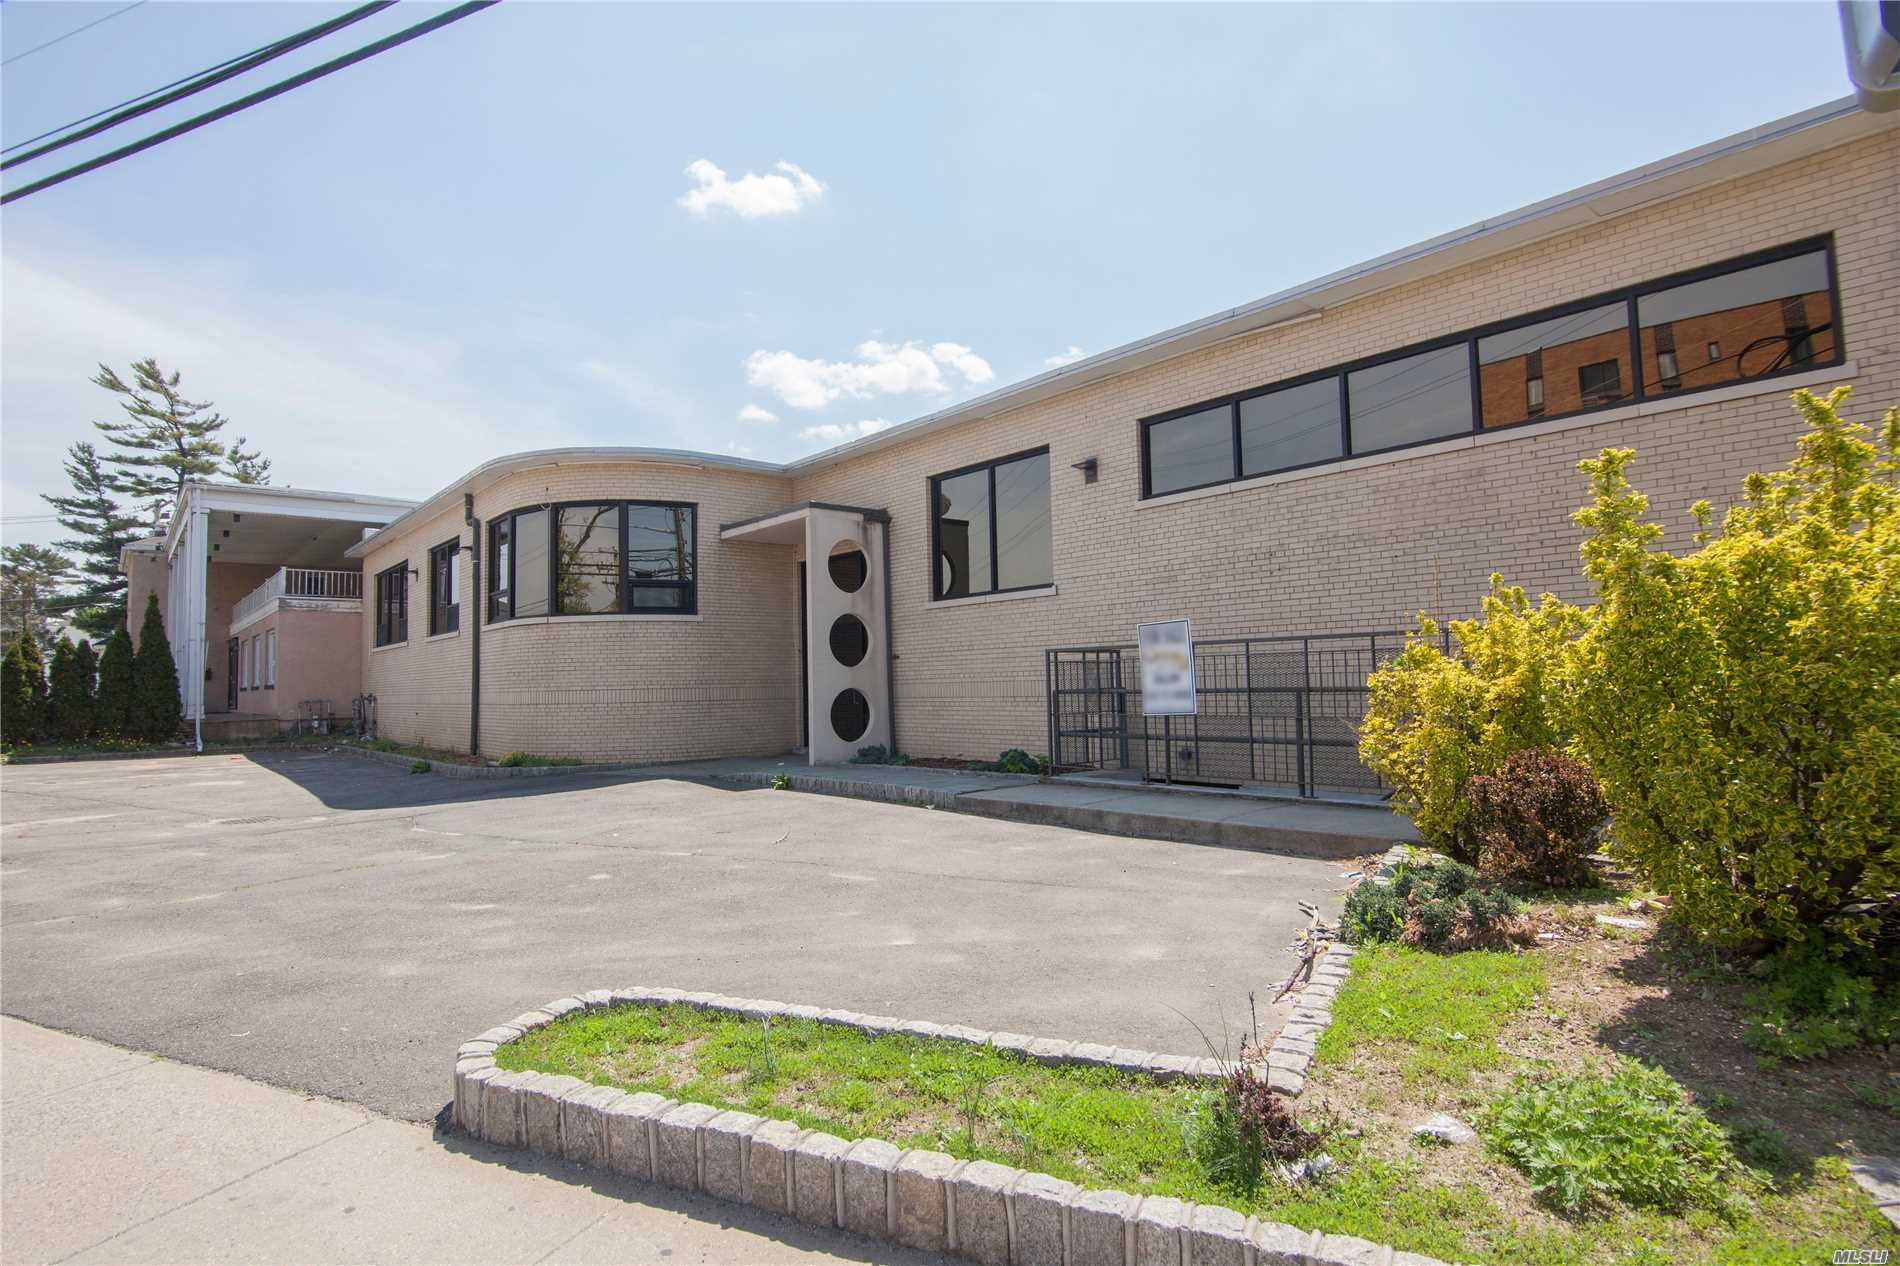 Acquisto commerciale in 171 Greenwich St, Hempstead, NY ,11550